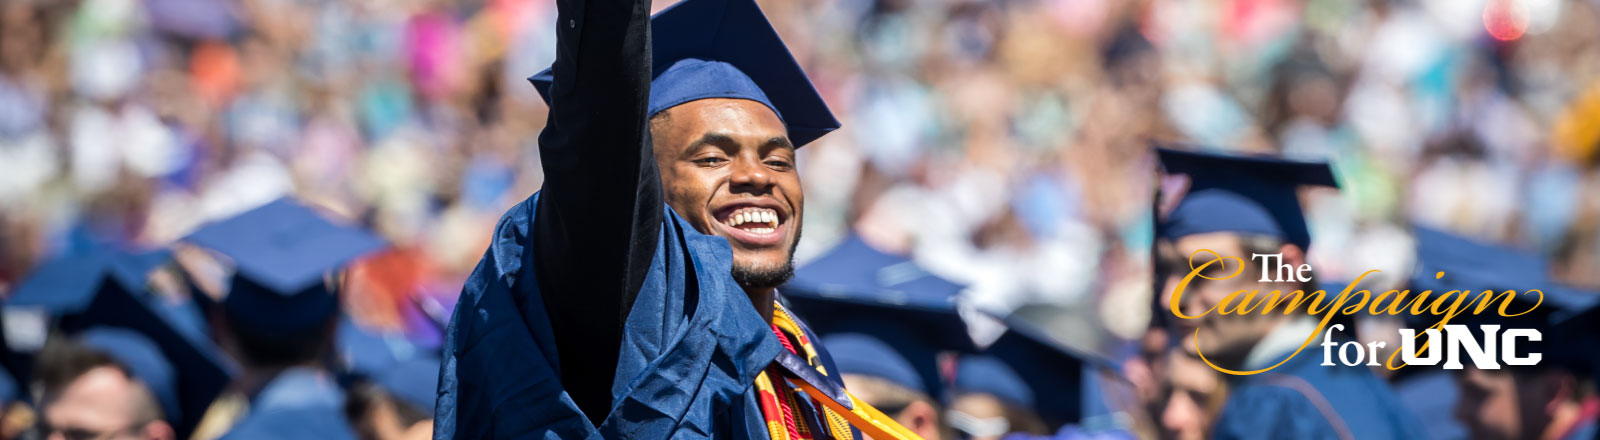 Spring Commencement | Campaign for UNC